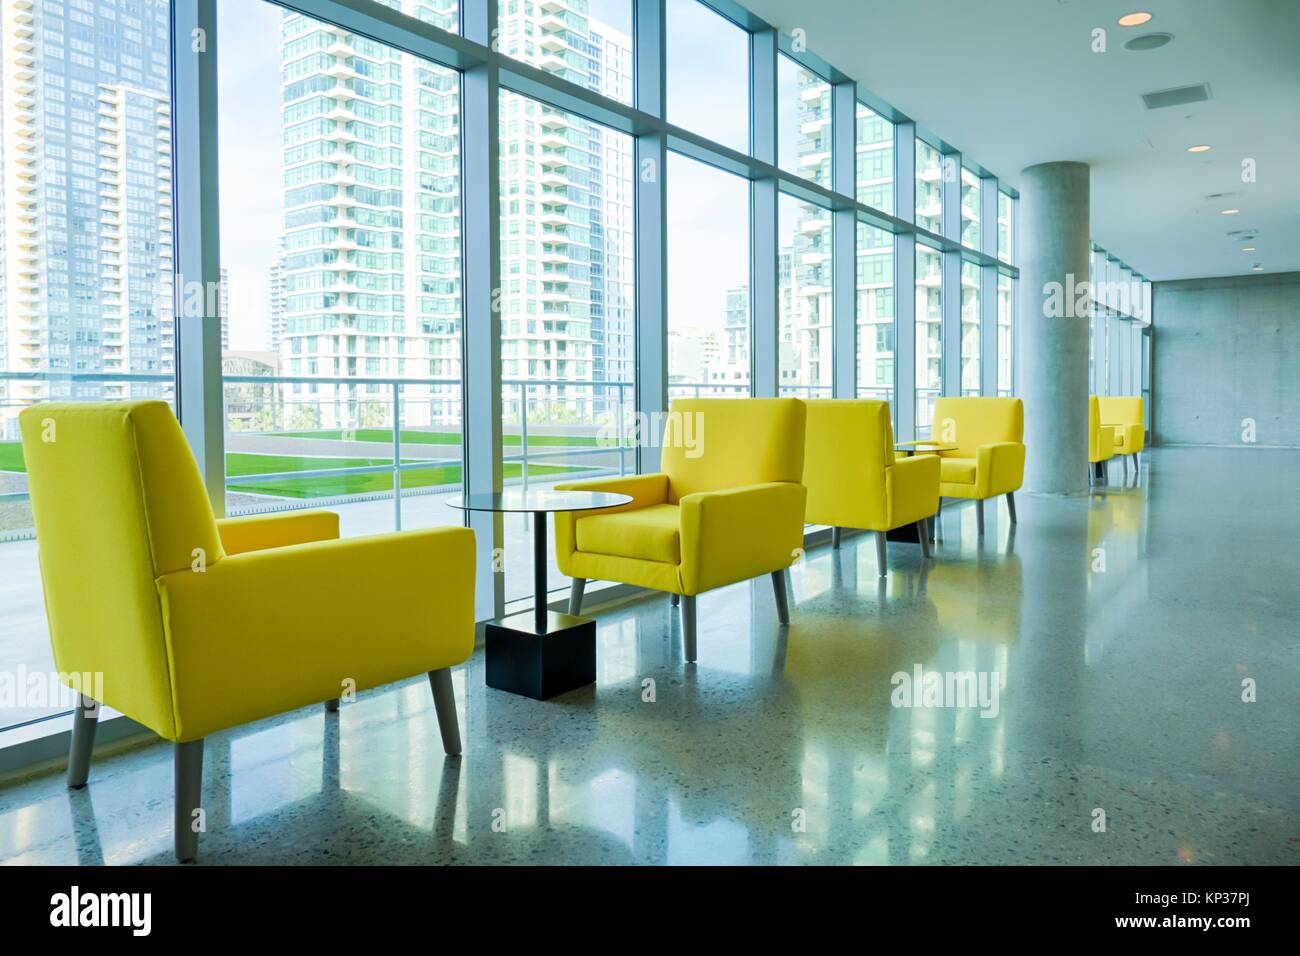 yellow chairs stock photos yellow chairs stock images alamy